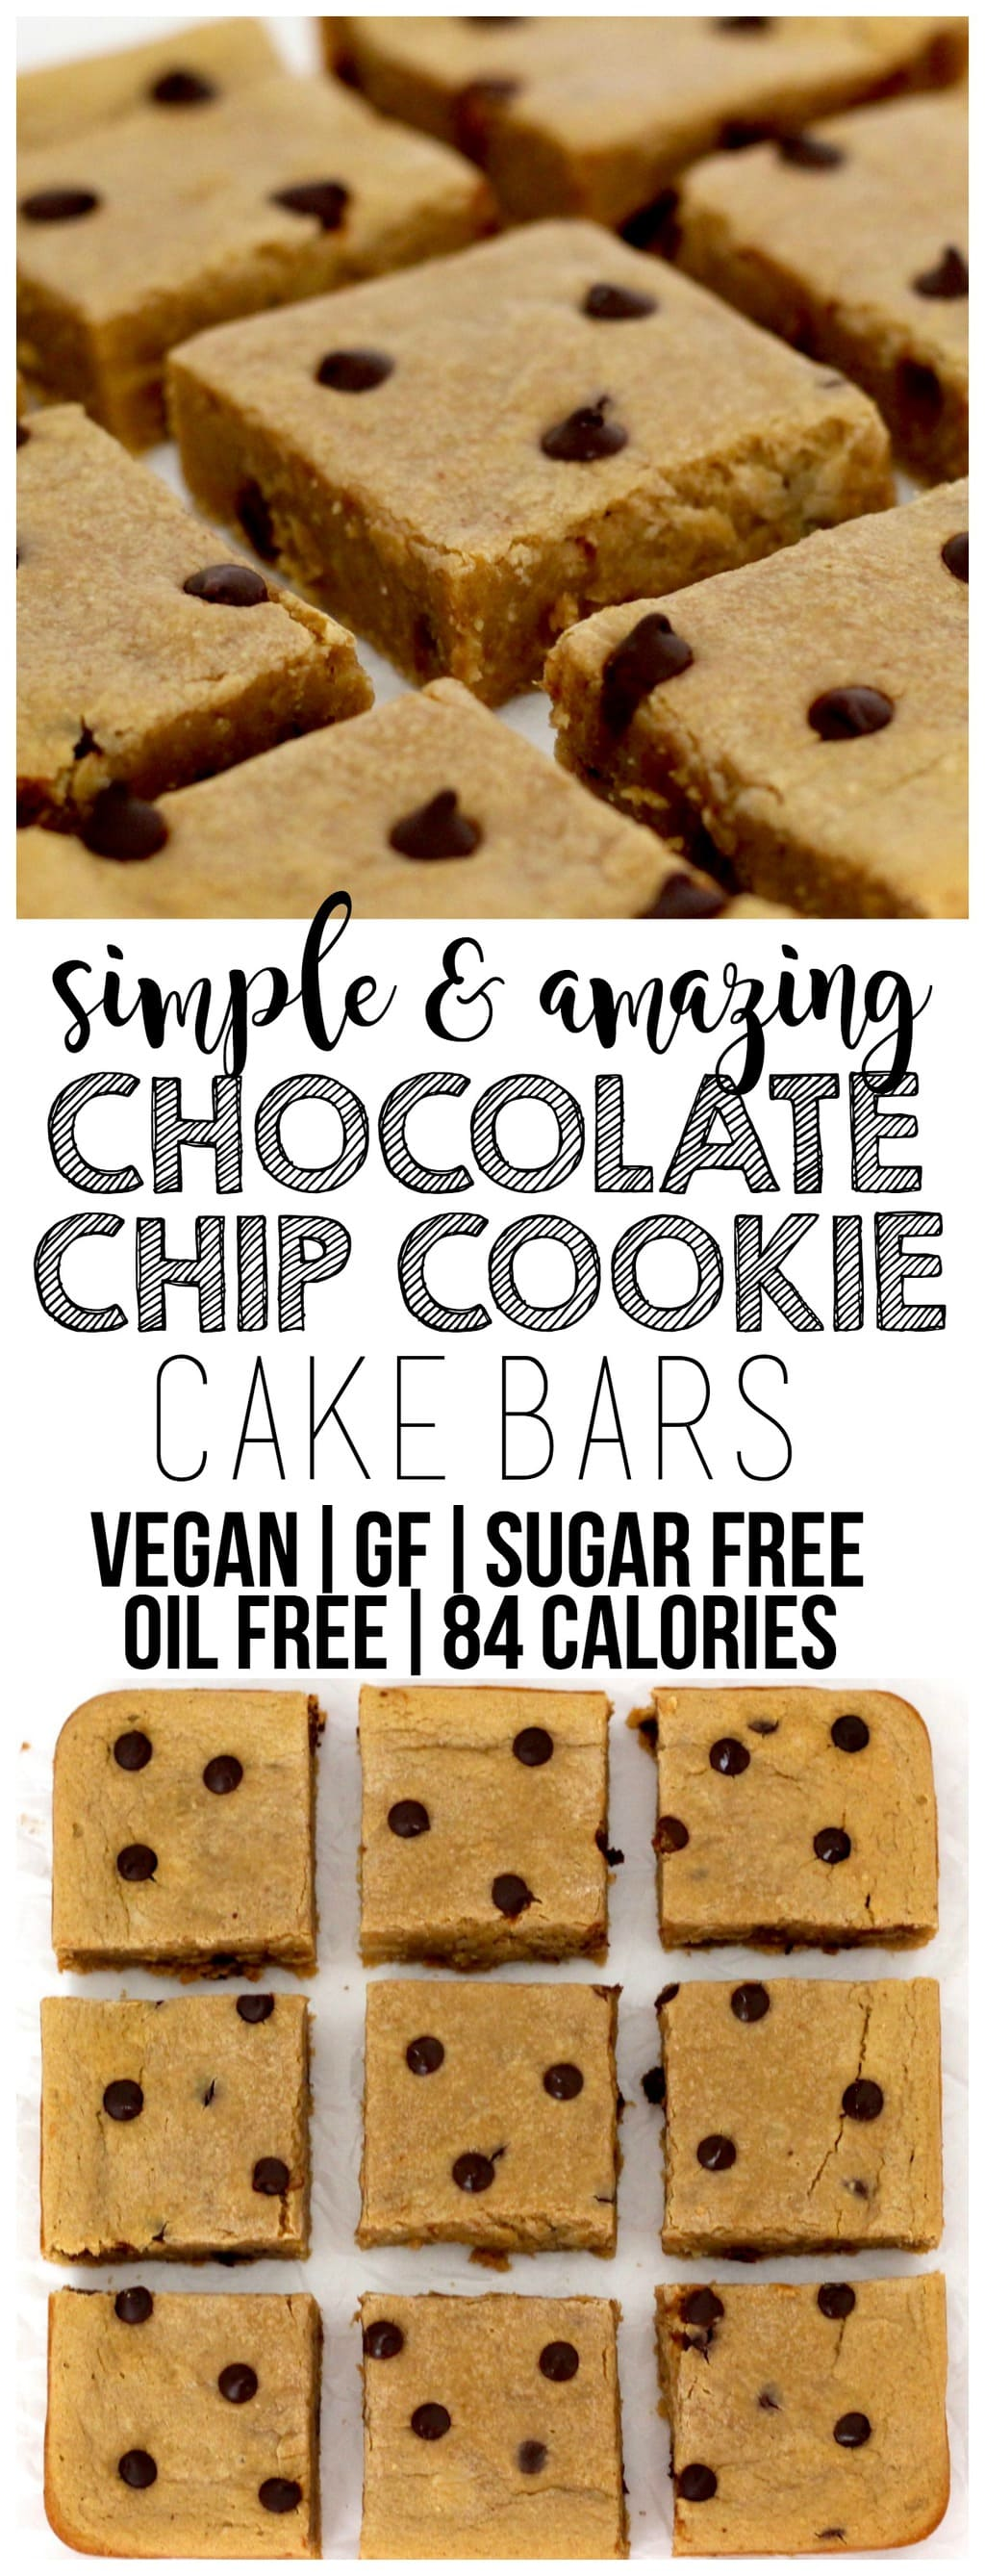 Simple & amazing Chocolate Chip Cookie Cake Bars that are vegan, gluten-free, oil-free, sugar-free, low-carb, and only 84 calories each! The perfect, kid-friendly, healthy, low-calorie dessert.